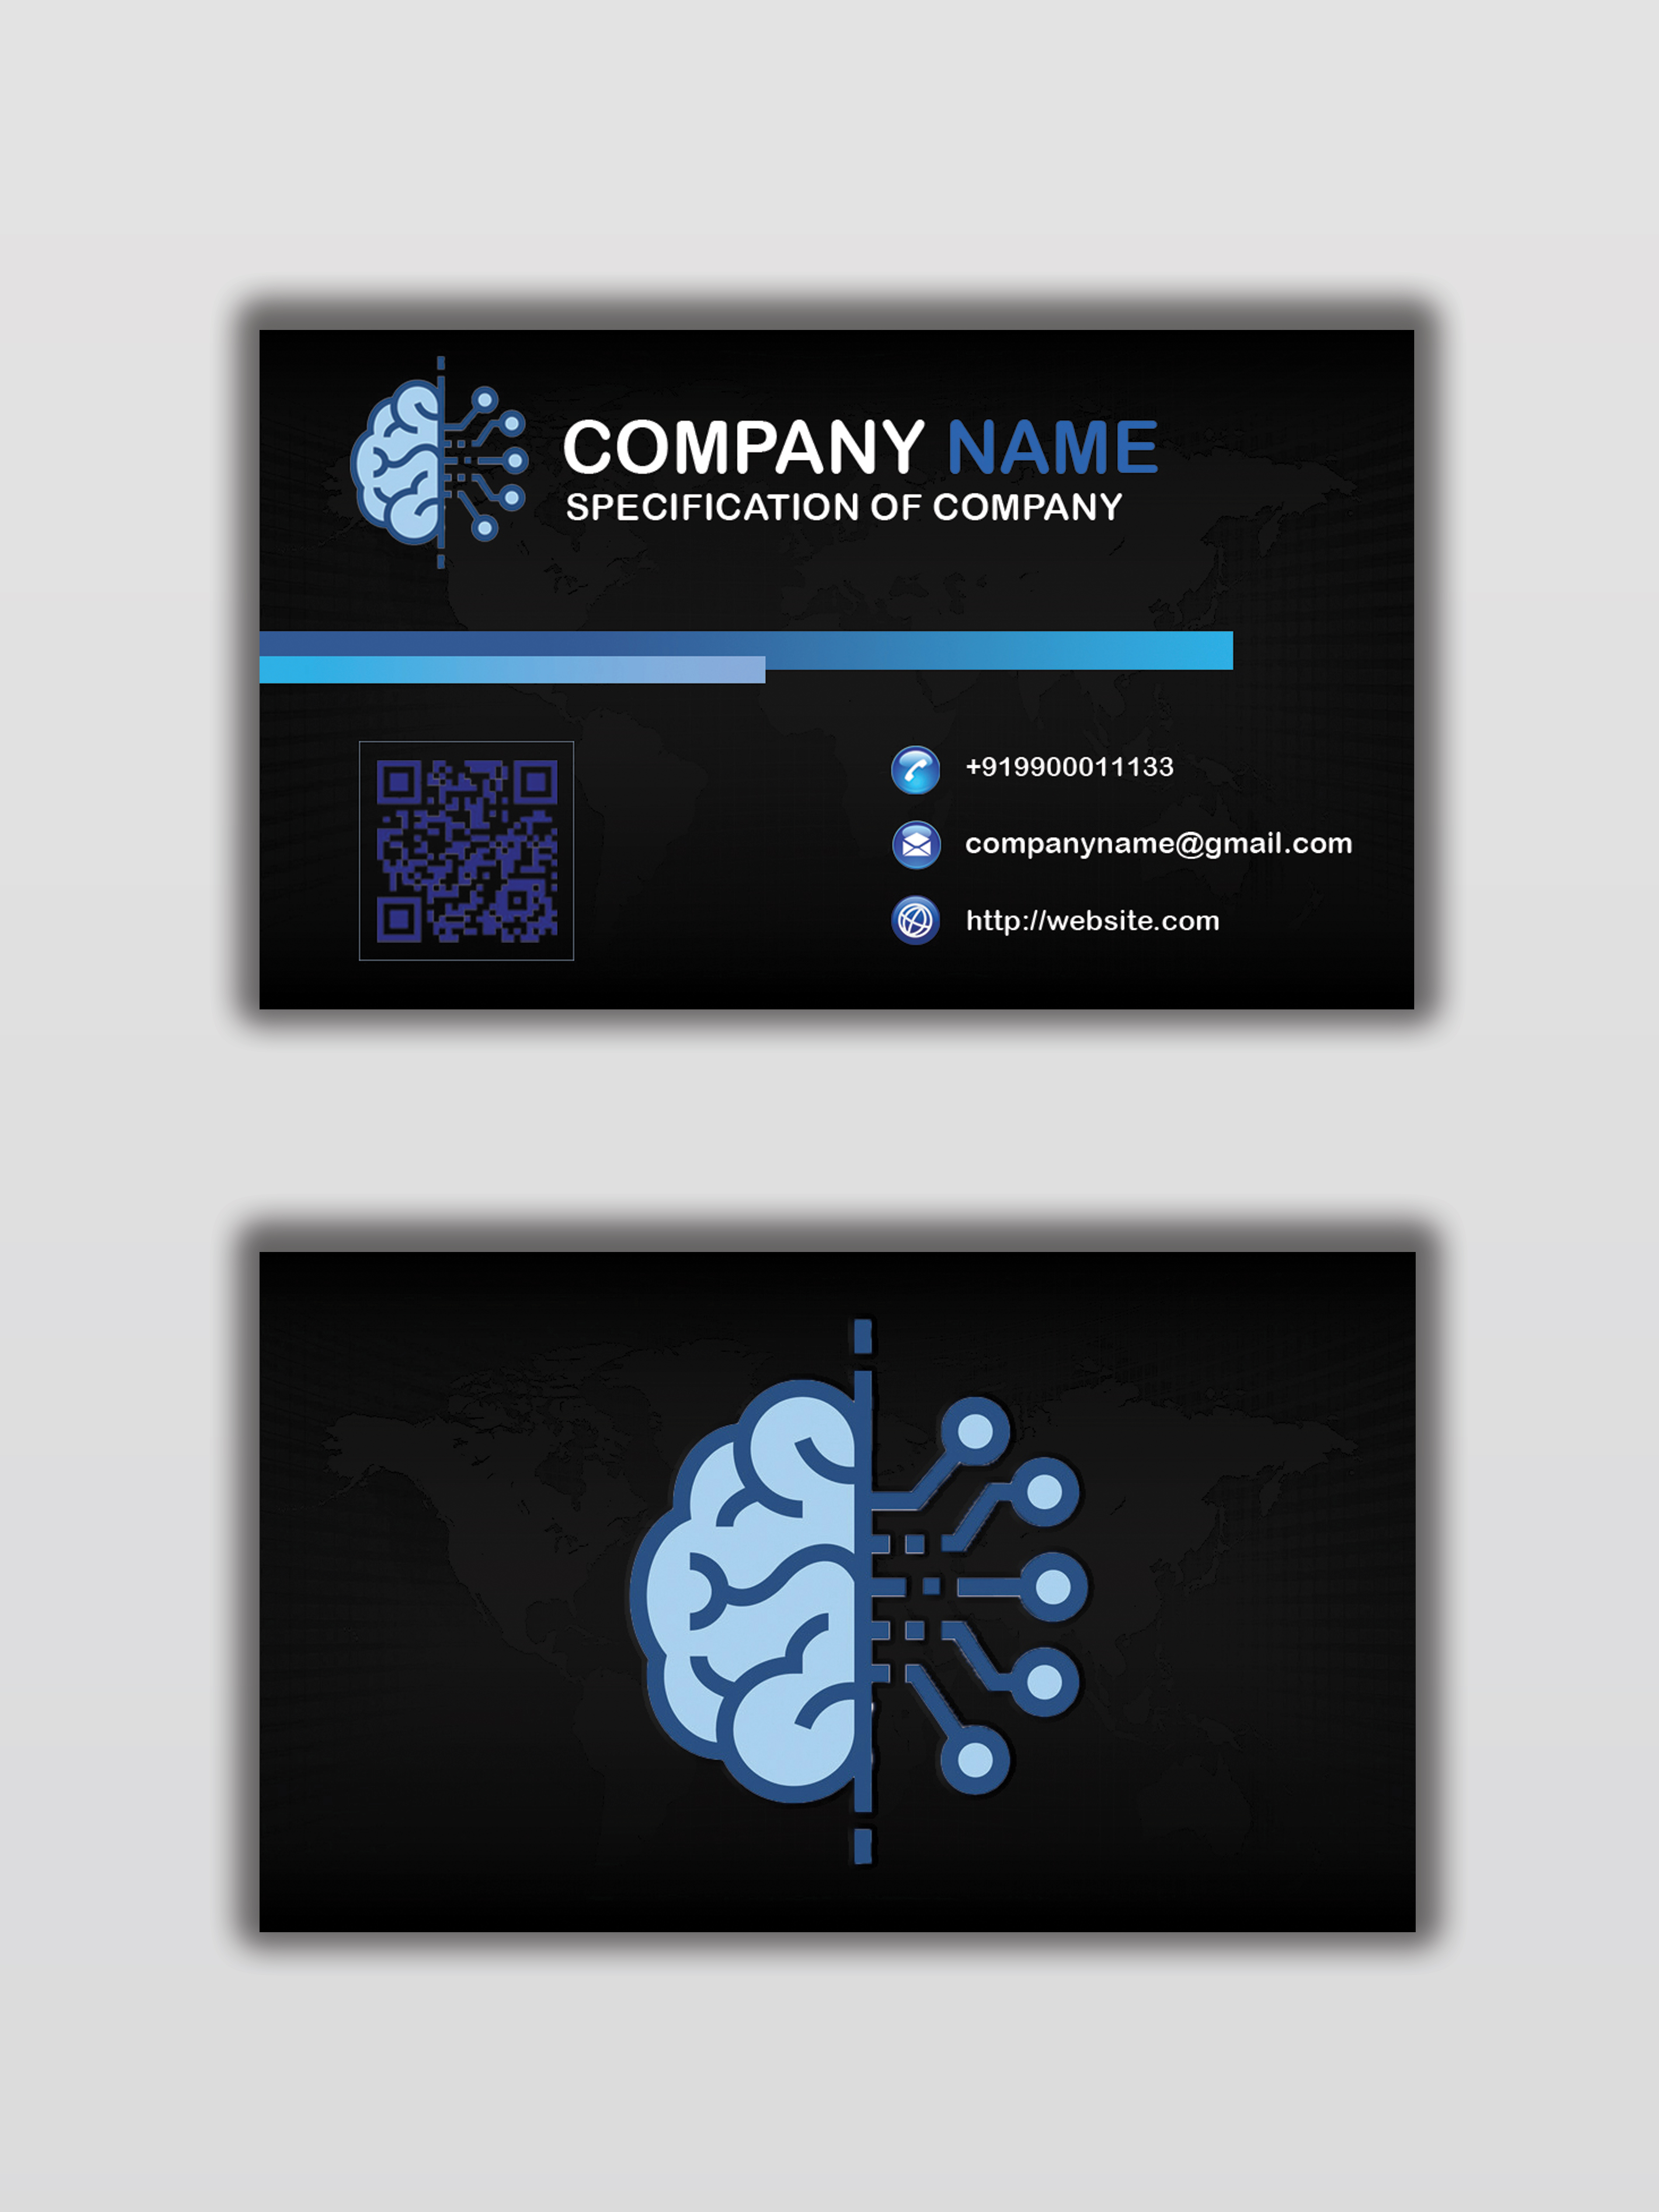 Want to have an outshine Business card